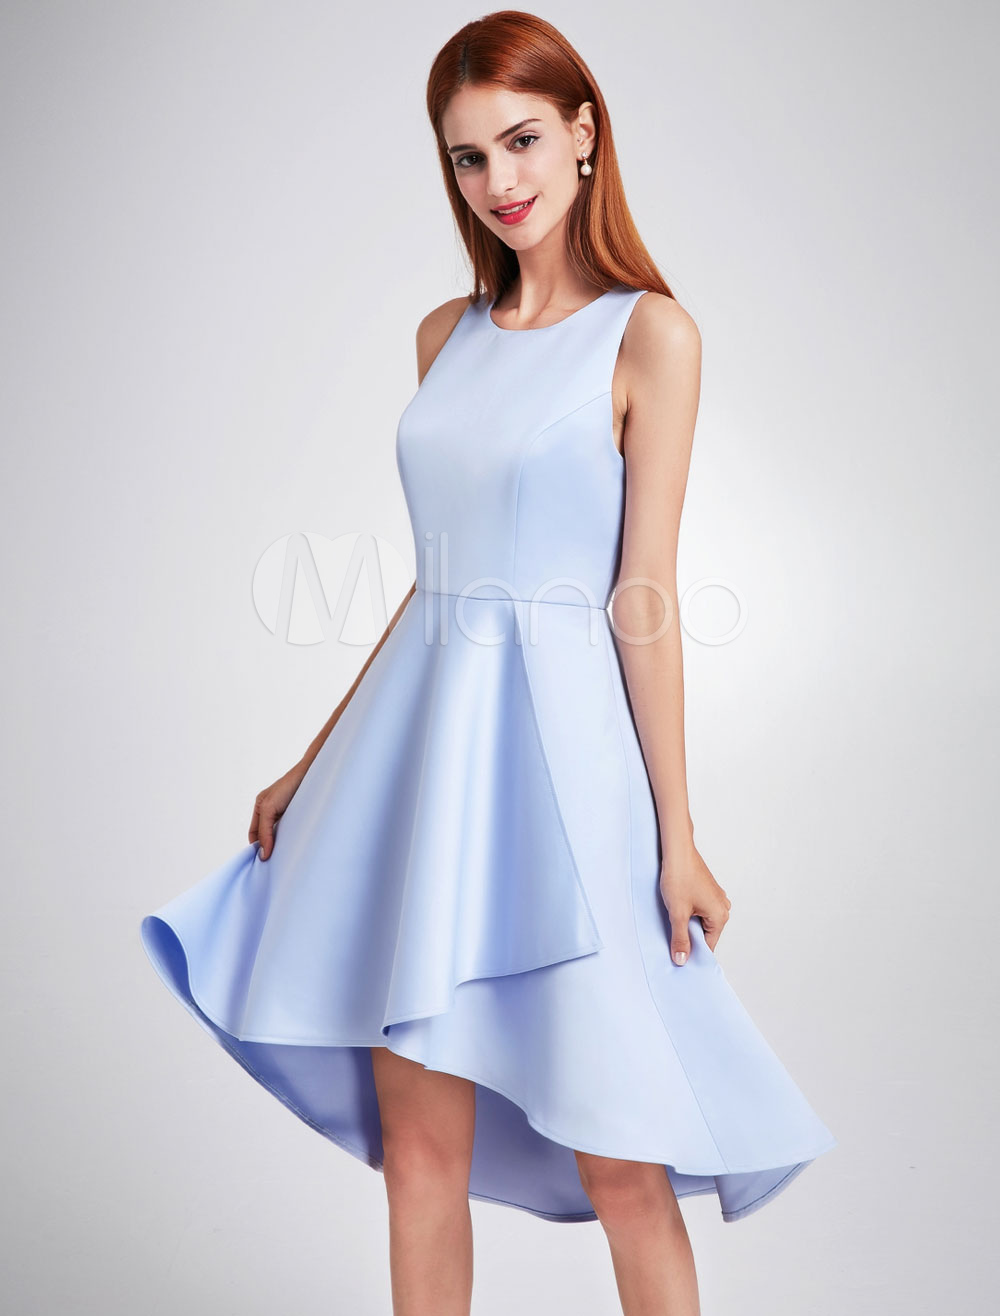 Short Bridesmaid Dresses Satin Baby Blue High Low Sleeveless Knee ...